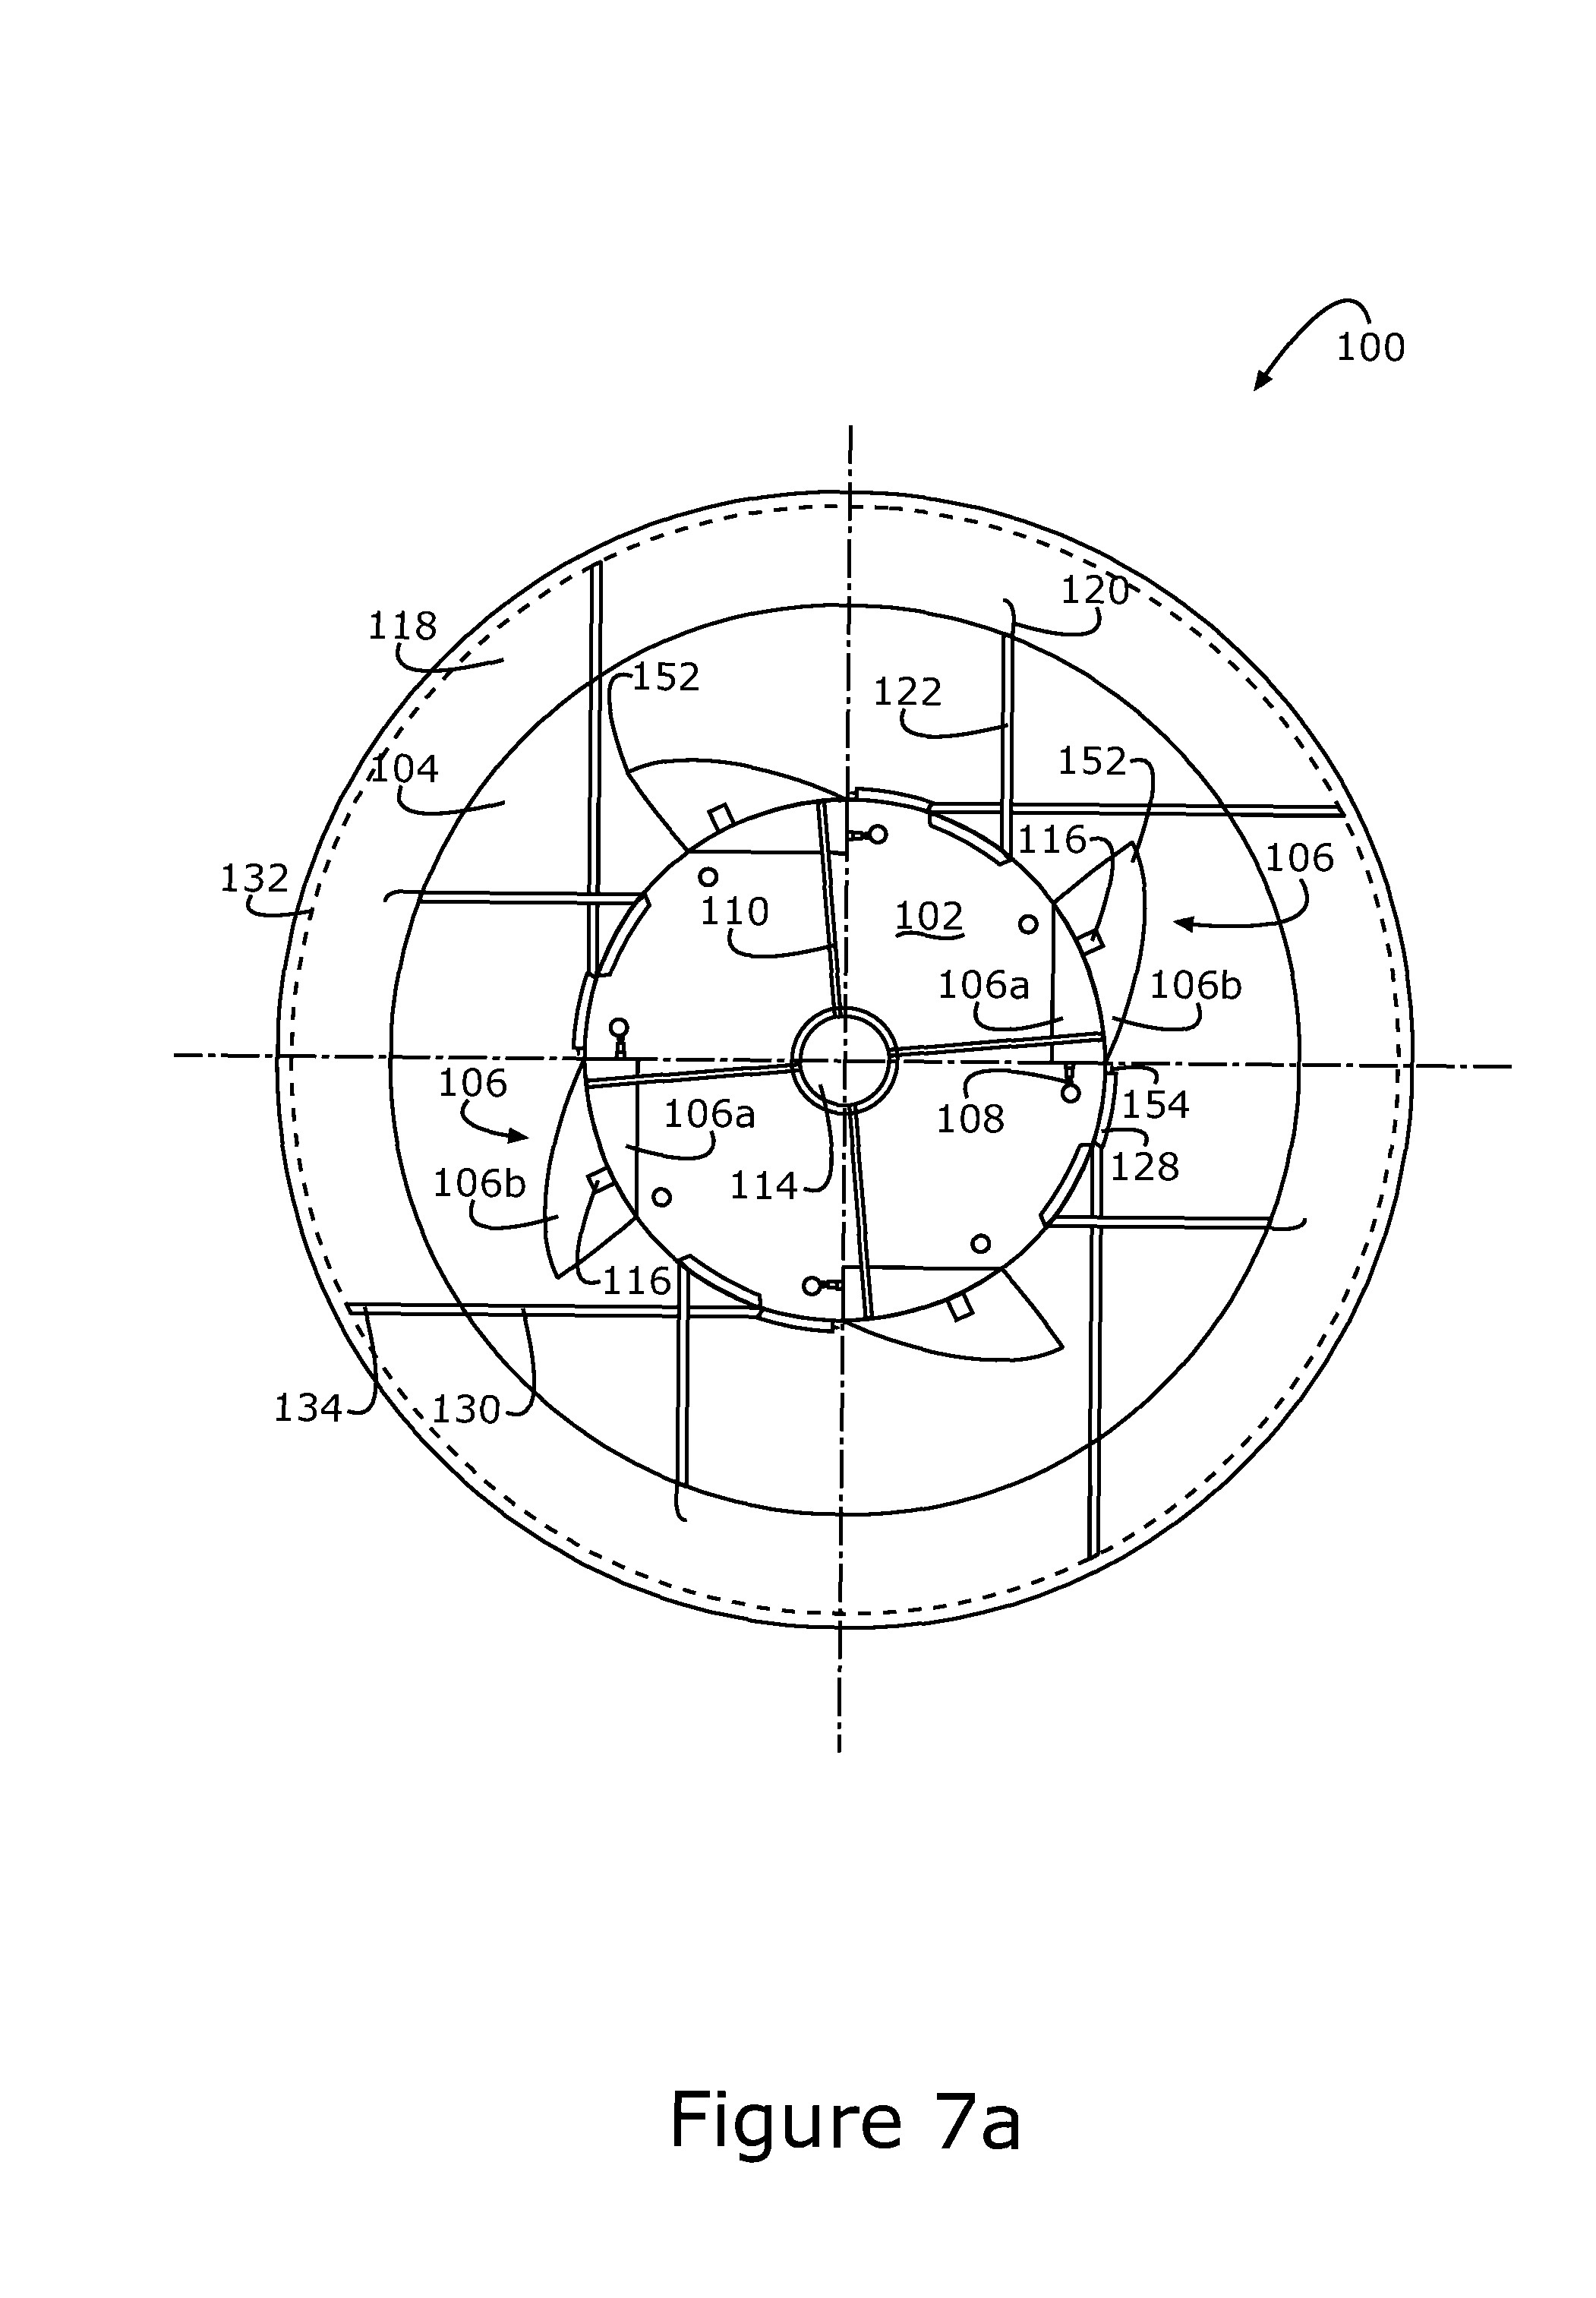 Wankel Engine Diagram Patent Us Pistonless Rotary Internal Bustion Engine and Of Wankel Engine Diagram